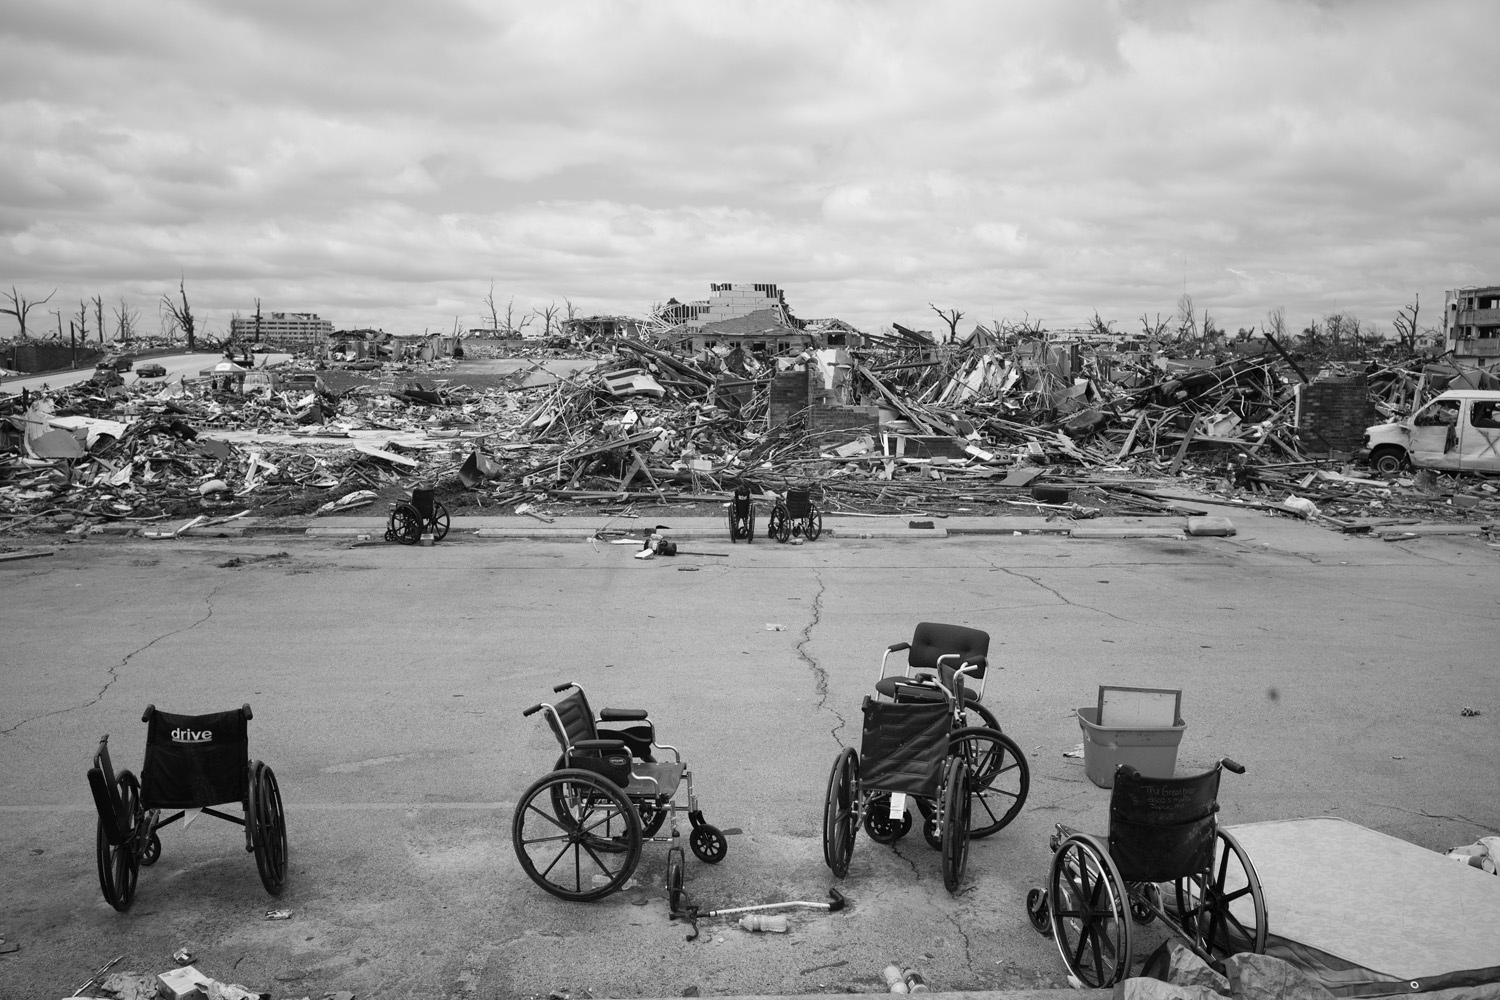 May 27, 2011. Abandoned wheelchairs scattered in the parking lot at the devastated Greenbriar Nursing Home in Joplin, Mo. Eleven residents died after an EF-5 tornado struck the facility.